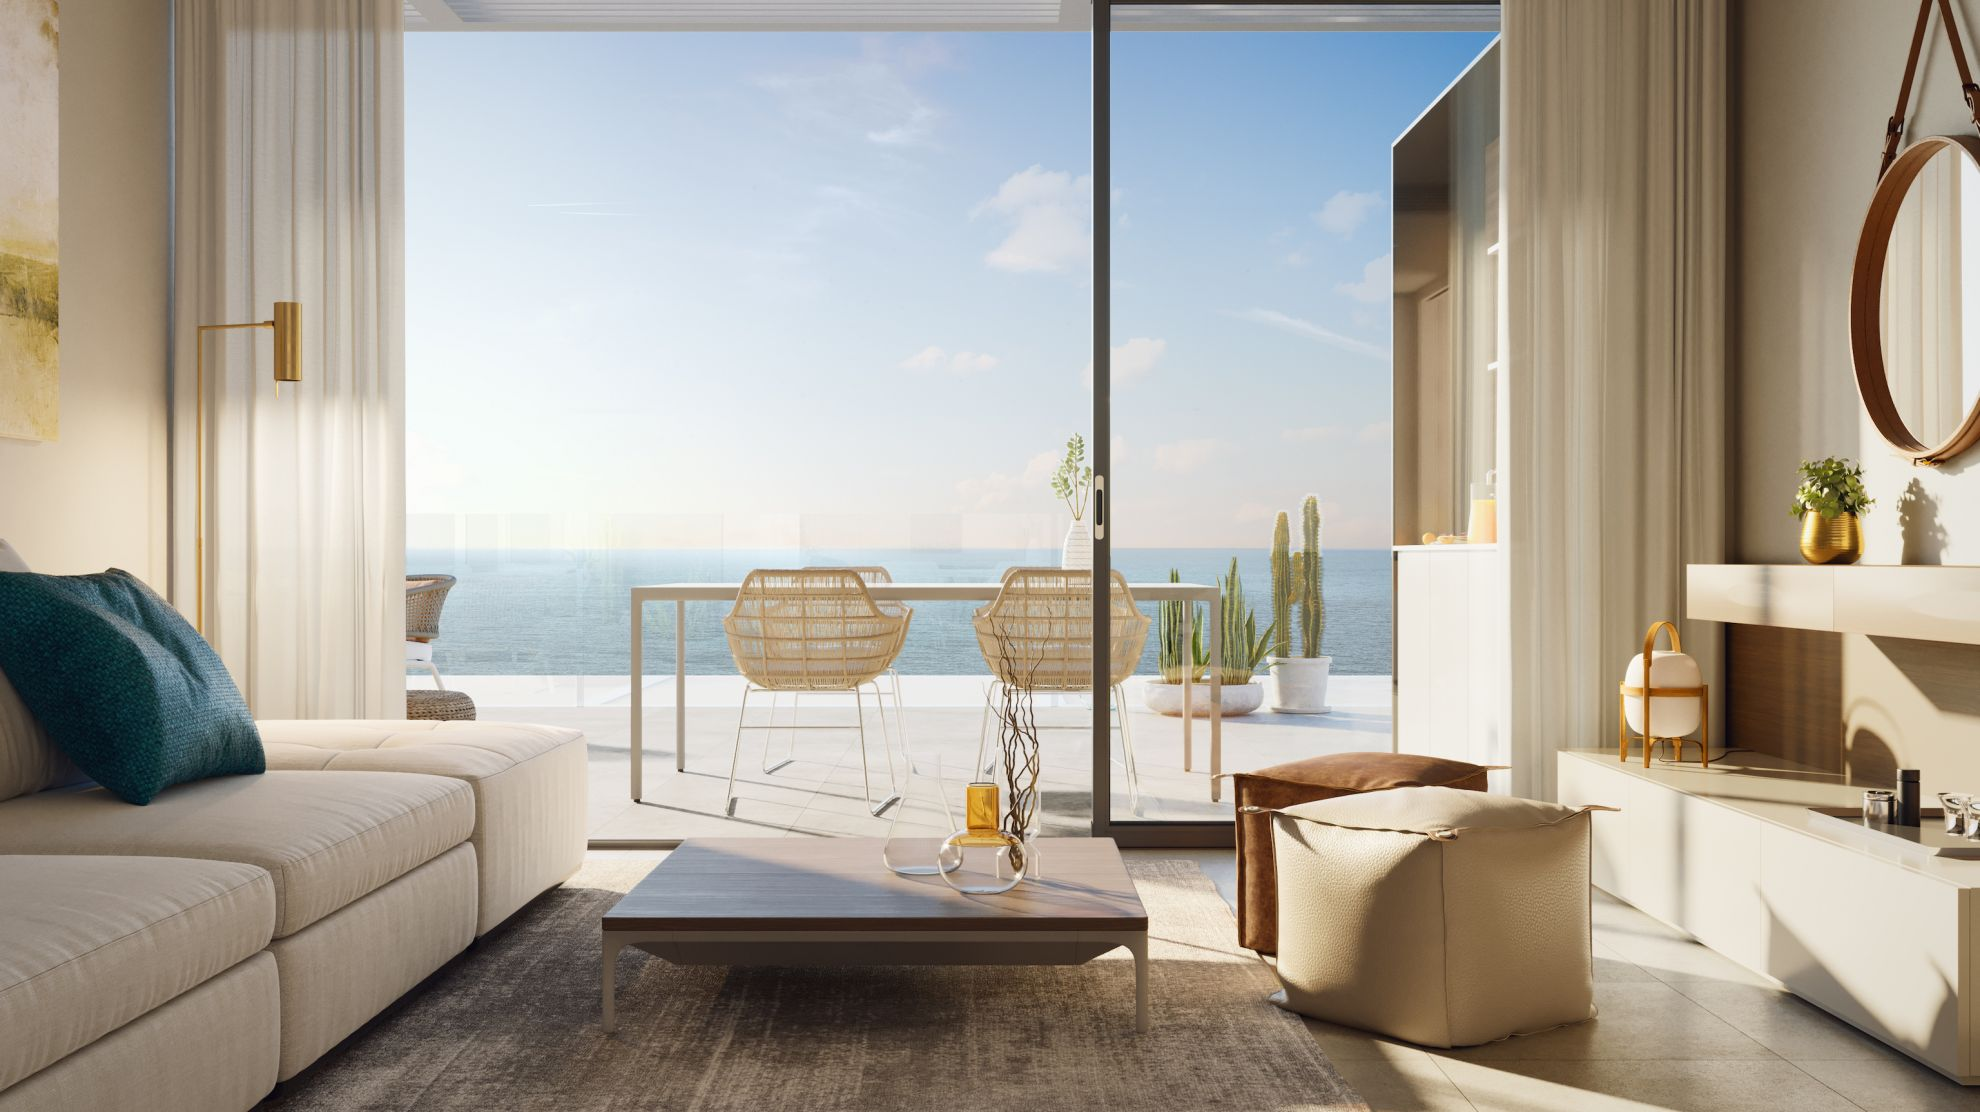 2 and 3 bedroom penthouse-style apartments with big terraces overlookg the sea. House 11 11